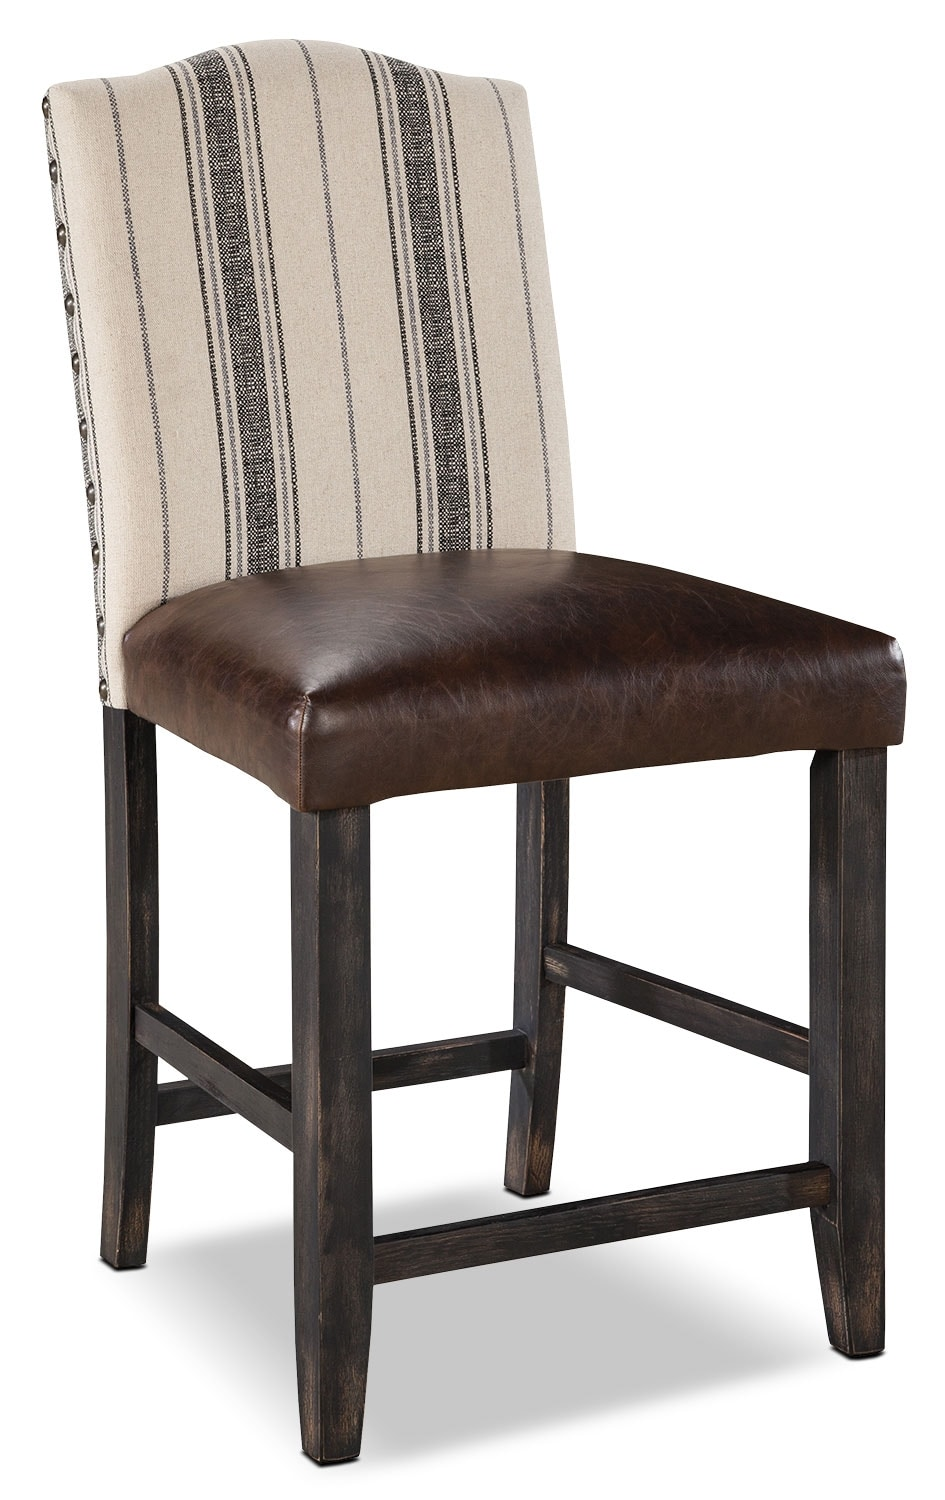 ... - Moriann Linen and Faux Leather Counter-Height Stool - Dark Brown